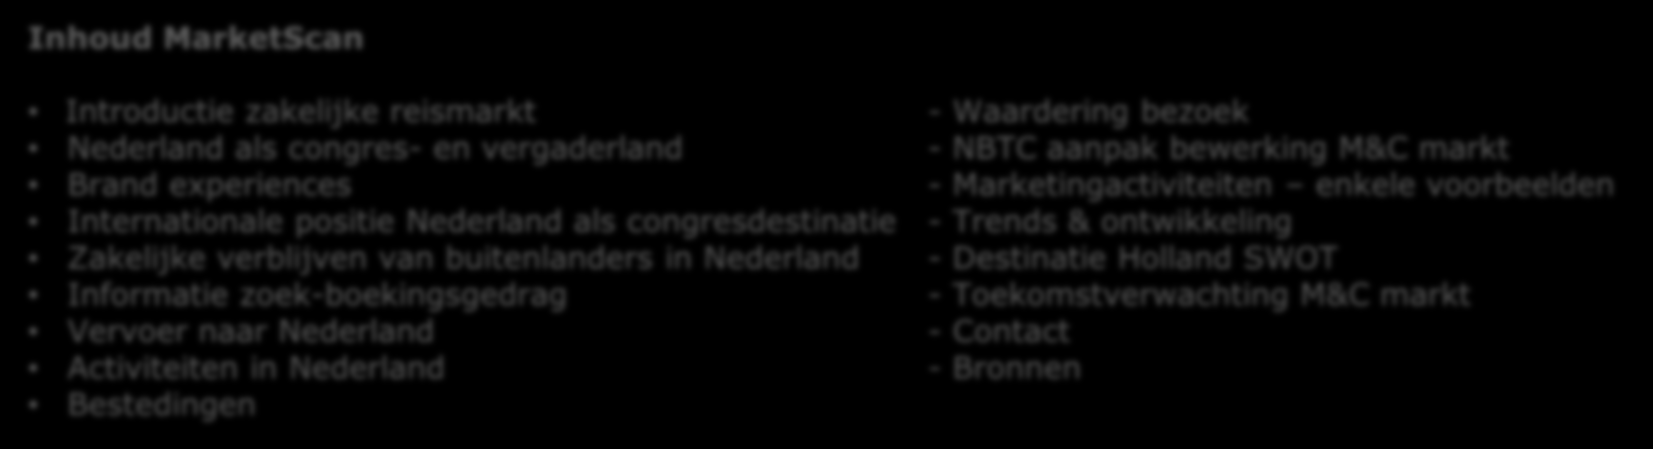 NBTC Holland Marketing (NBTC) NBTC Holland Marketing (NBTC) NBTC is verantwoordelijk voor de branding en marketing van bestemming Nederland in binnen-en buitenland.